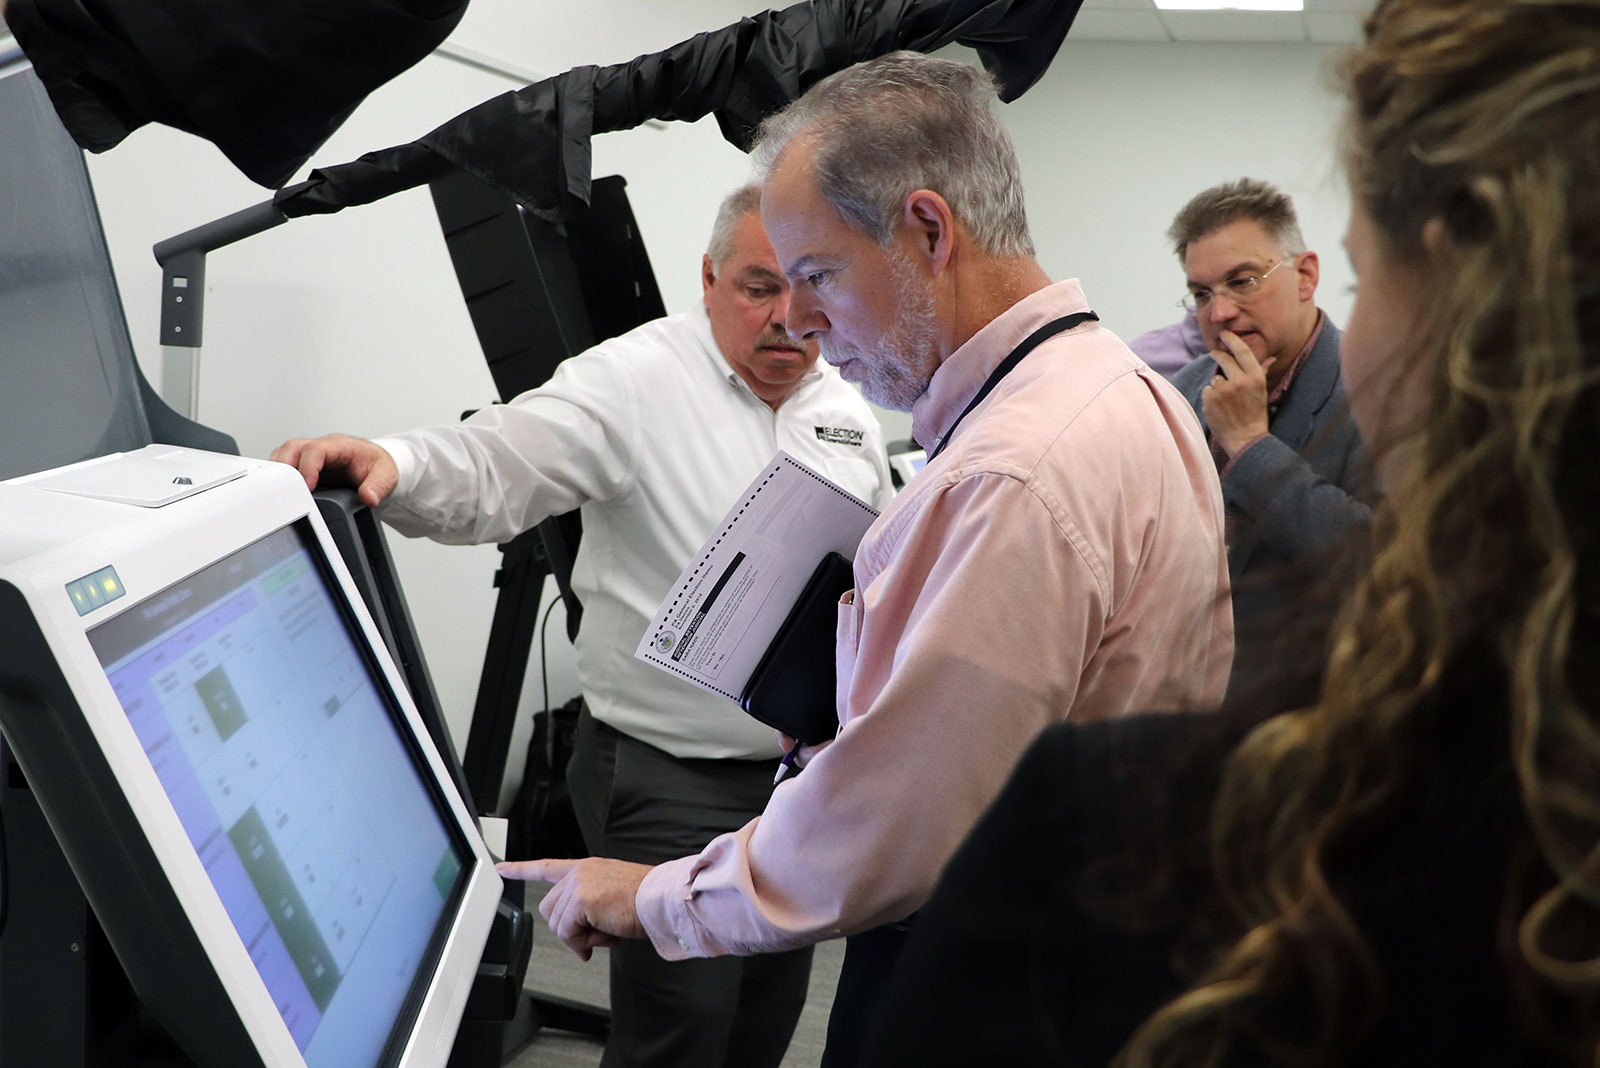 Cumberland County Commissioner Vince DiFilippo experiences voting on an ExpressVote XL during a product demonstration in June 2019. Photo courtesy of Cumberland County.